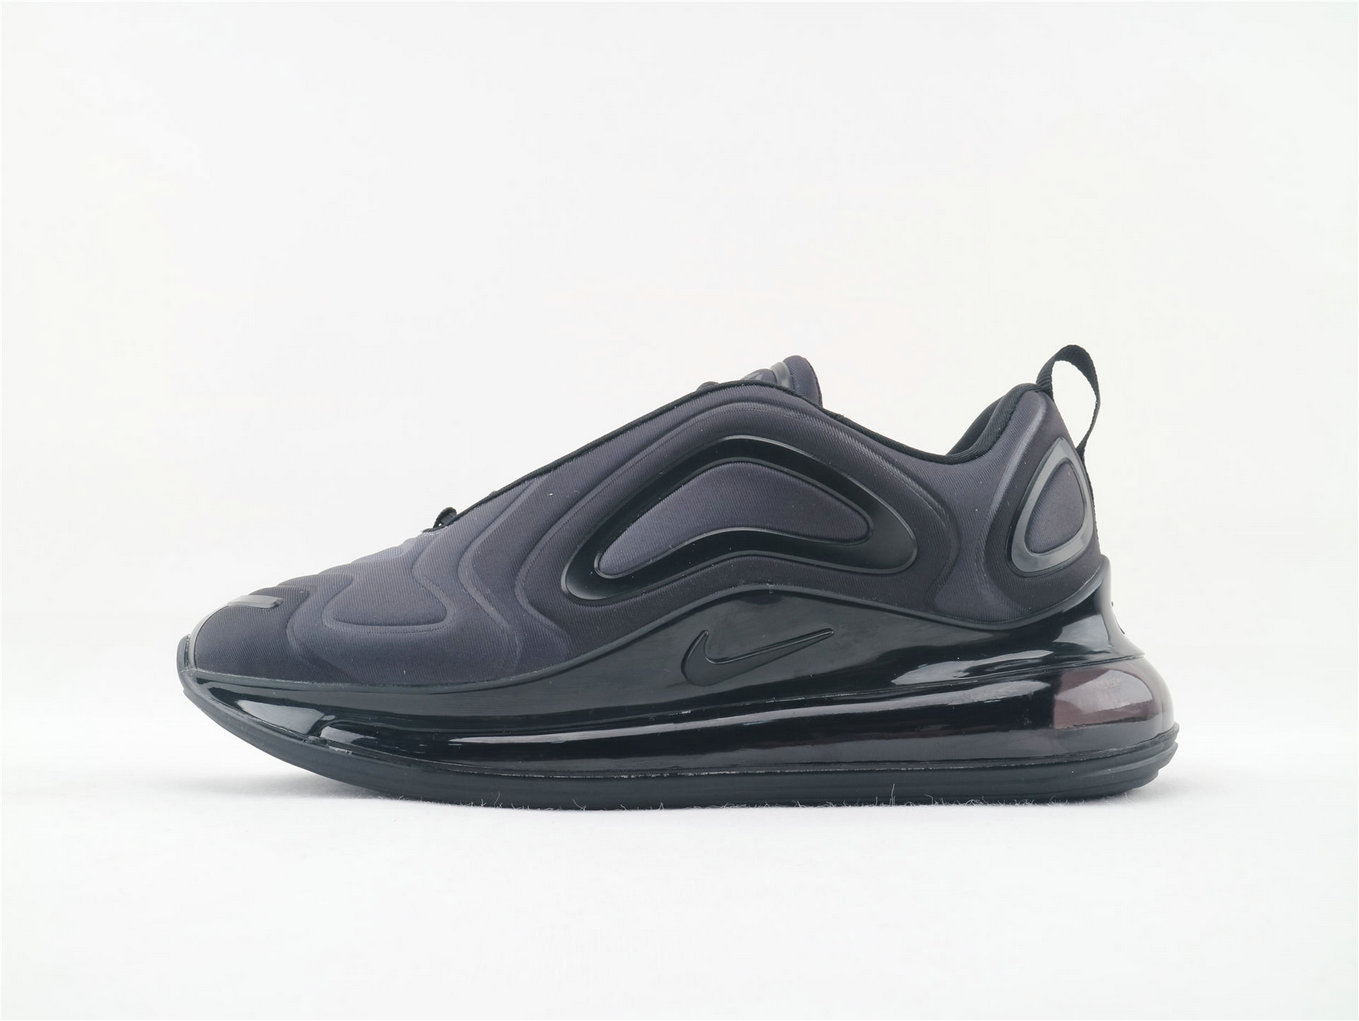 Where To Buy Wholesale Cheap Nike Sportwear Air Max 720 All Black-Anthracite AO2924-004 - www.wholesaleflyknit.com